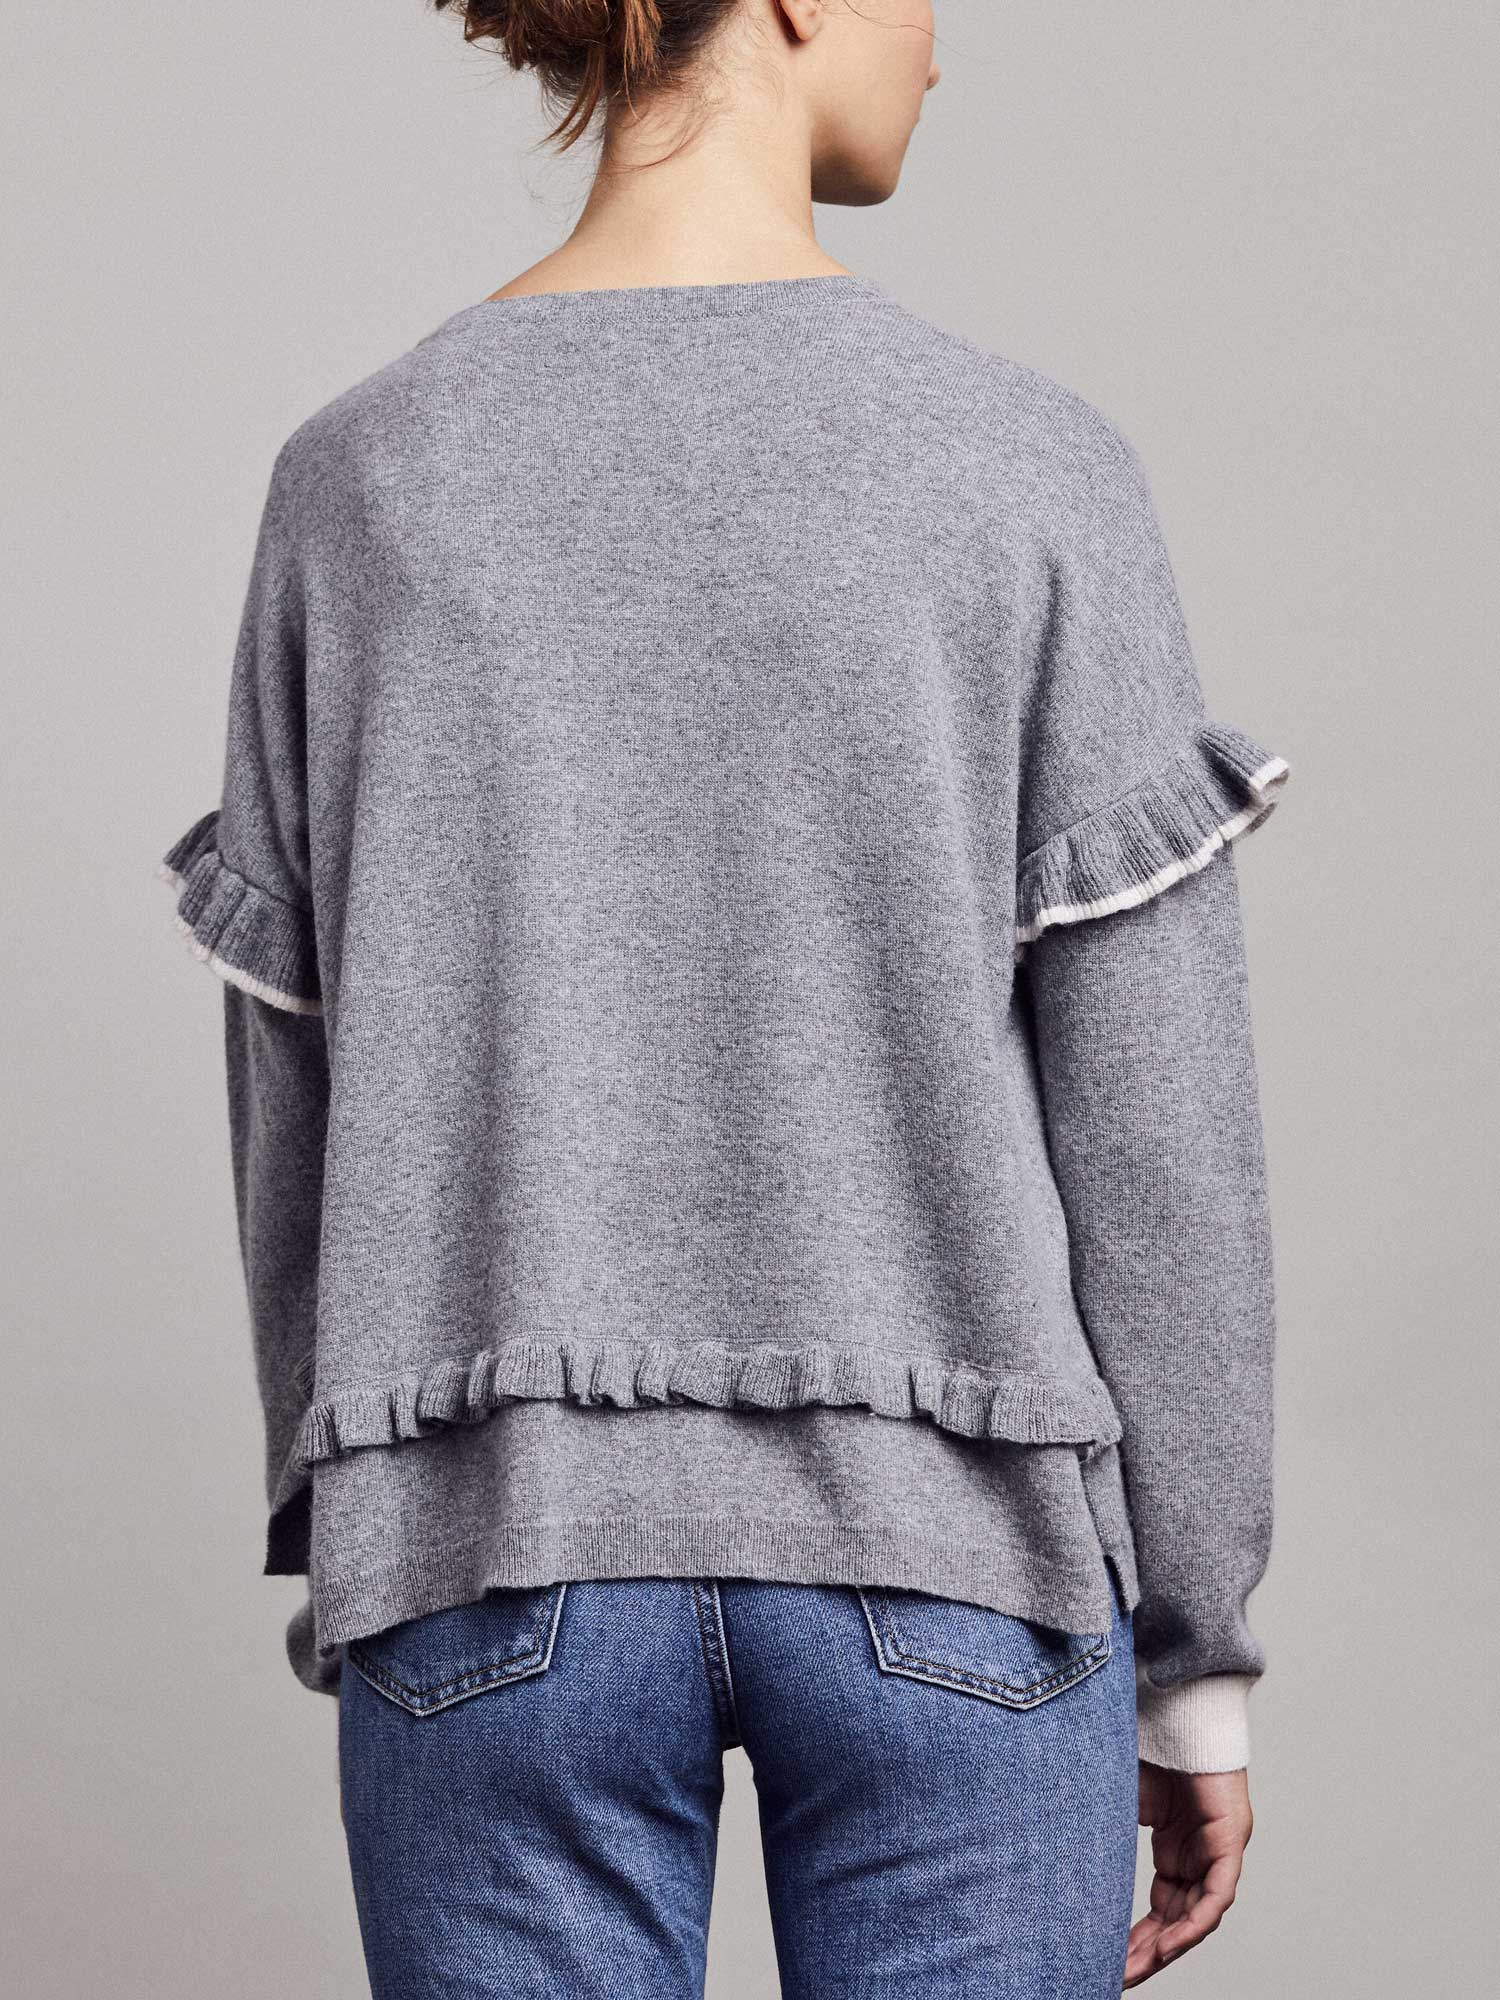 Freya 'Star' Jumper – Fulmar/Prom by LAM on curated-crowd.com